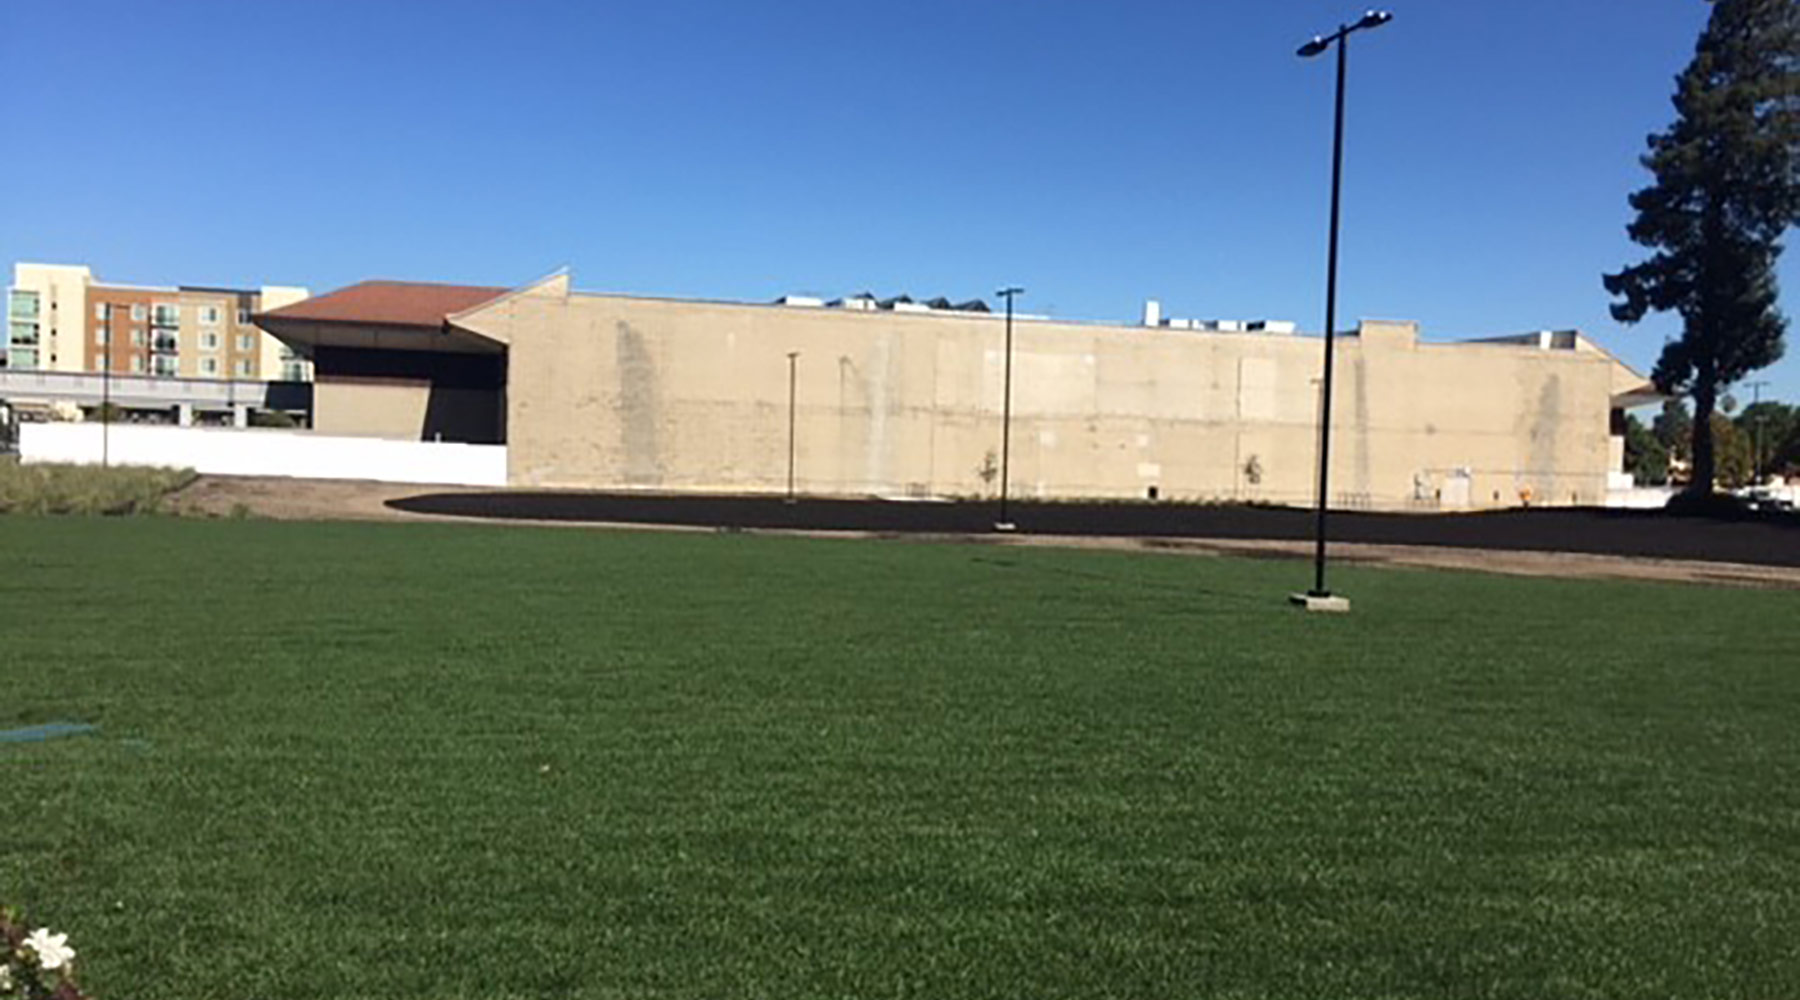 Lawn and irrigation complete; light poles in place and working.